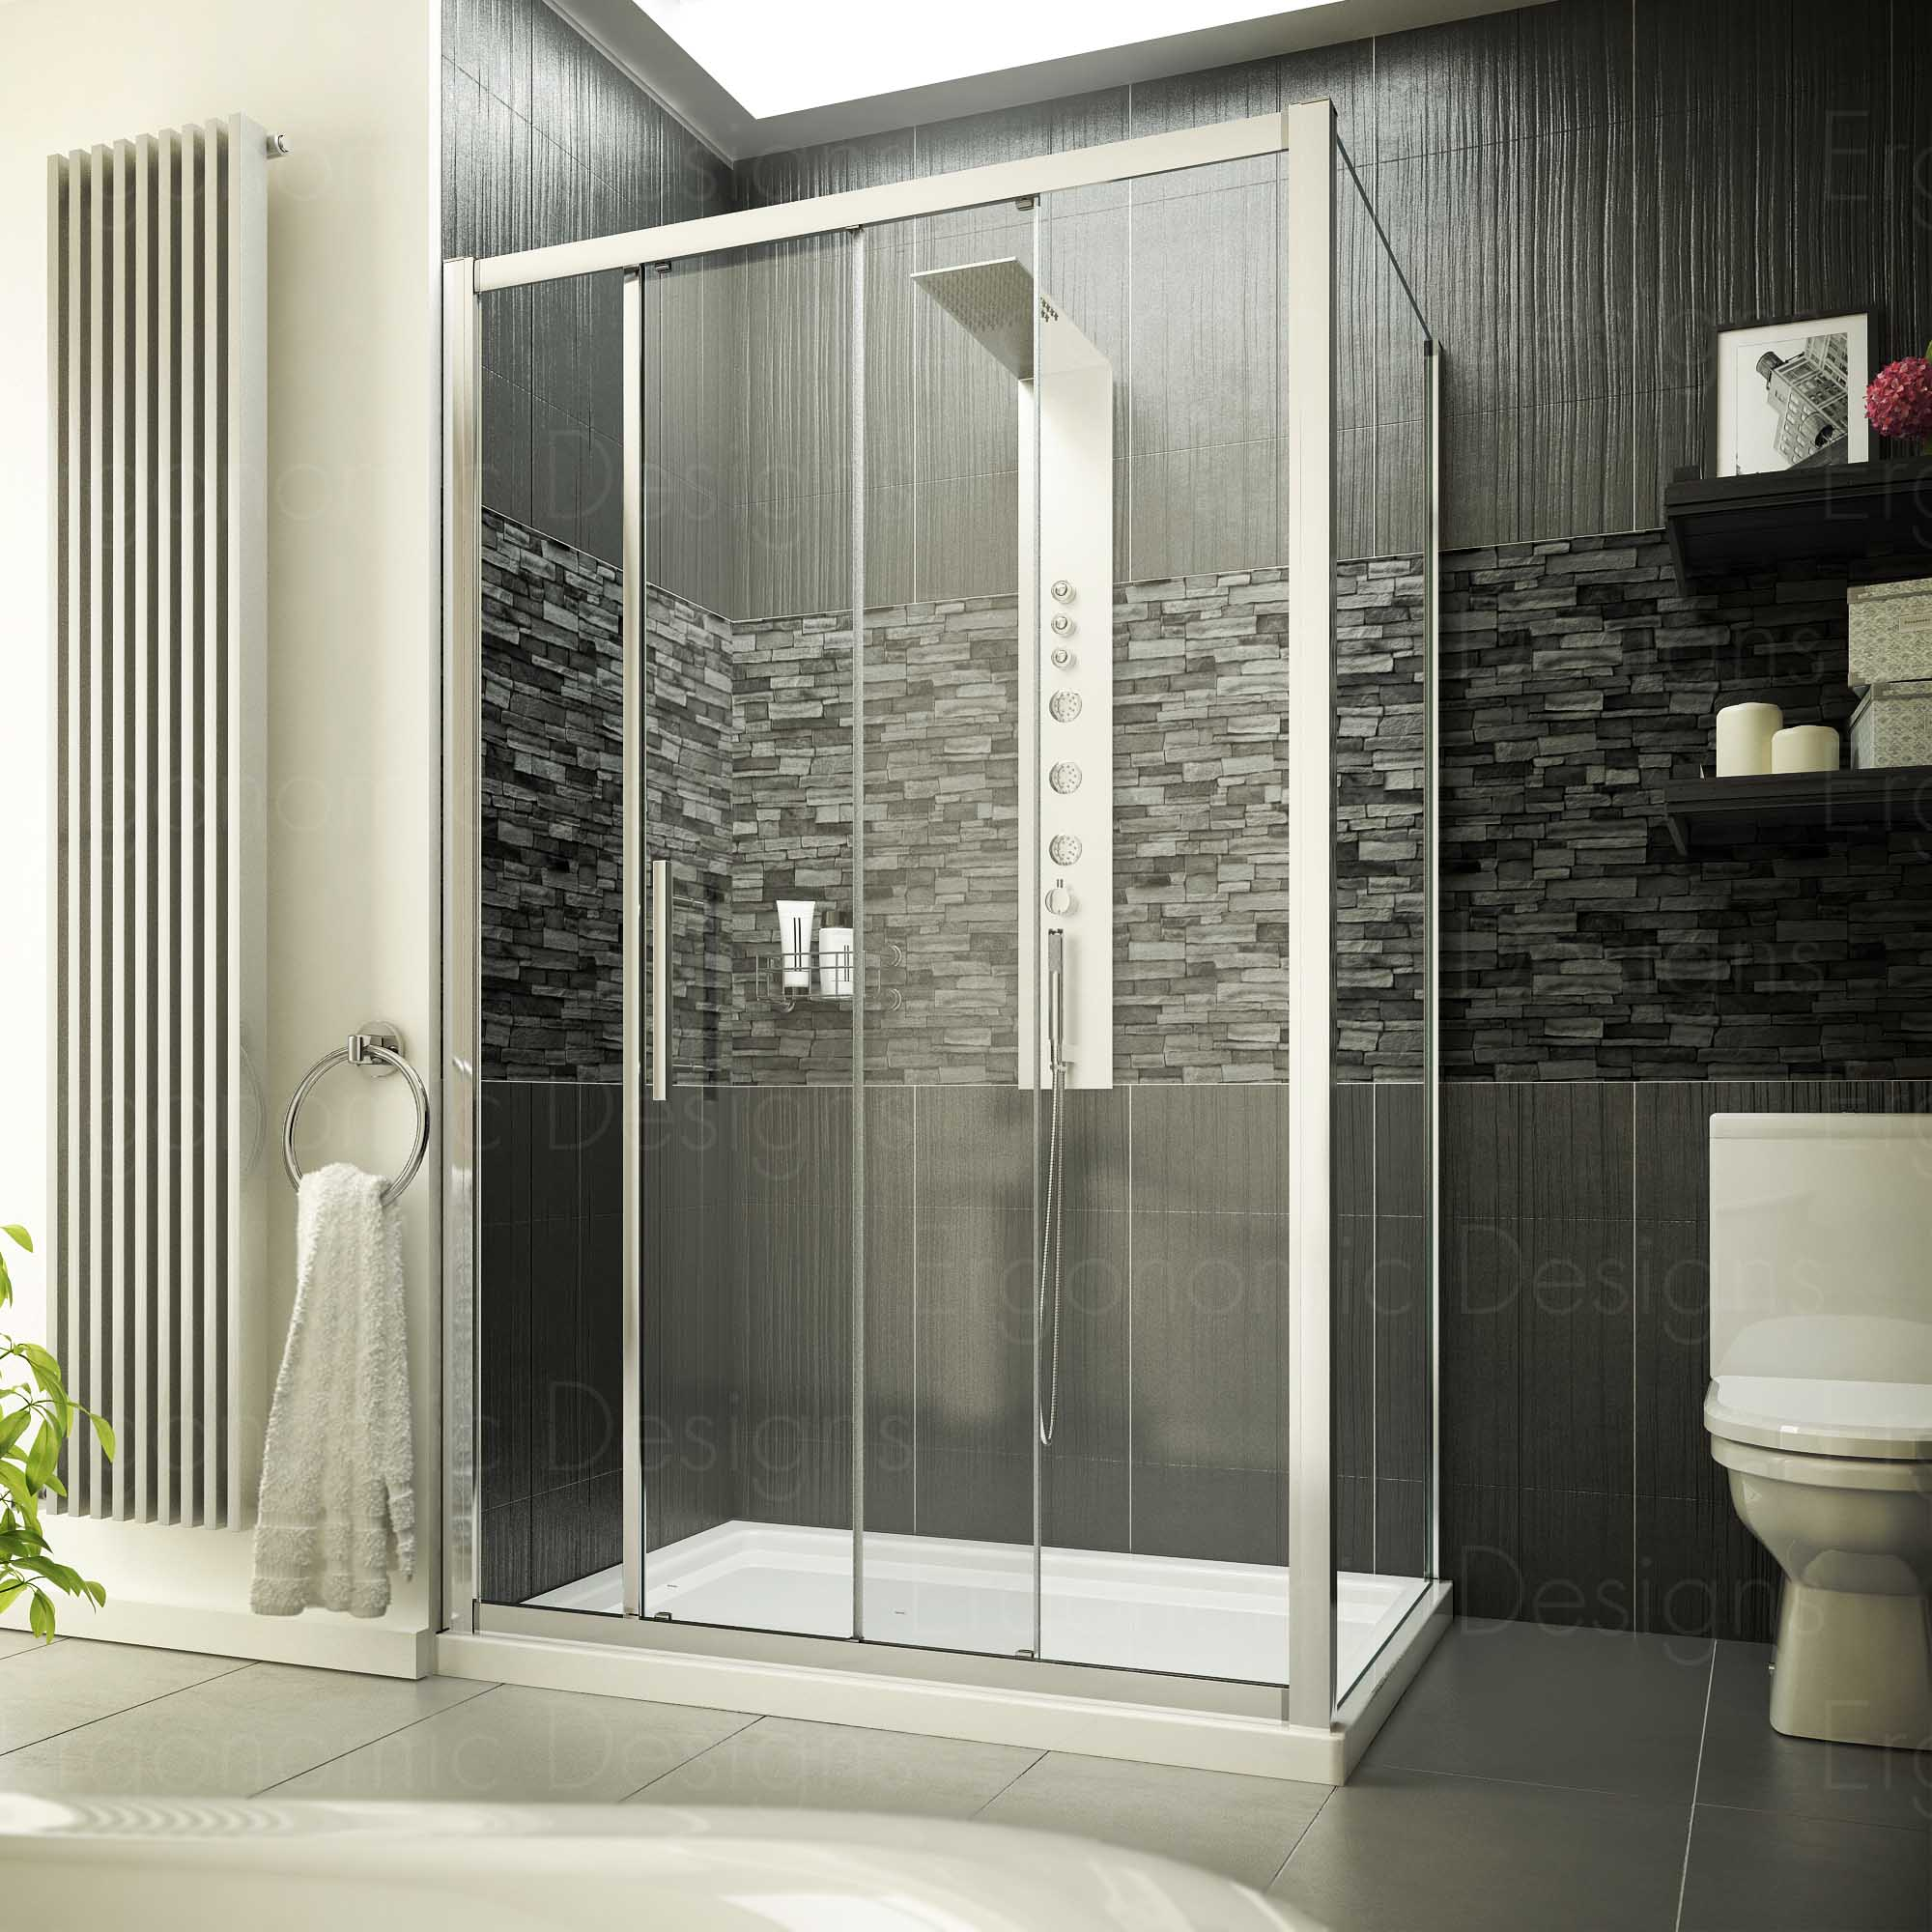 1000 x 900 Sliding Door Shower Enclosure 8mm Easy Clean Glass and ...